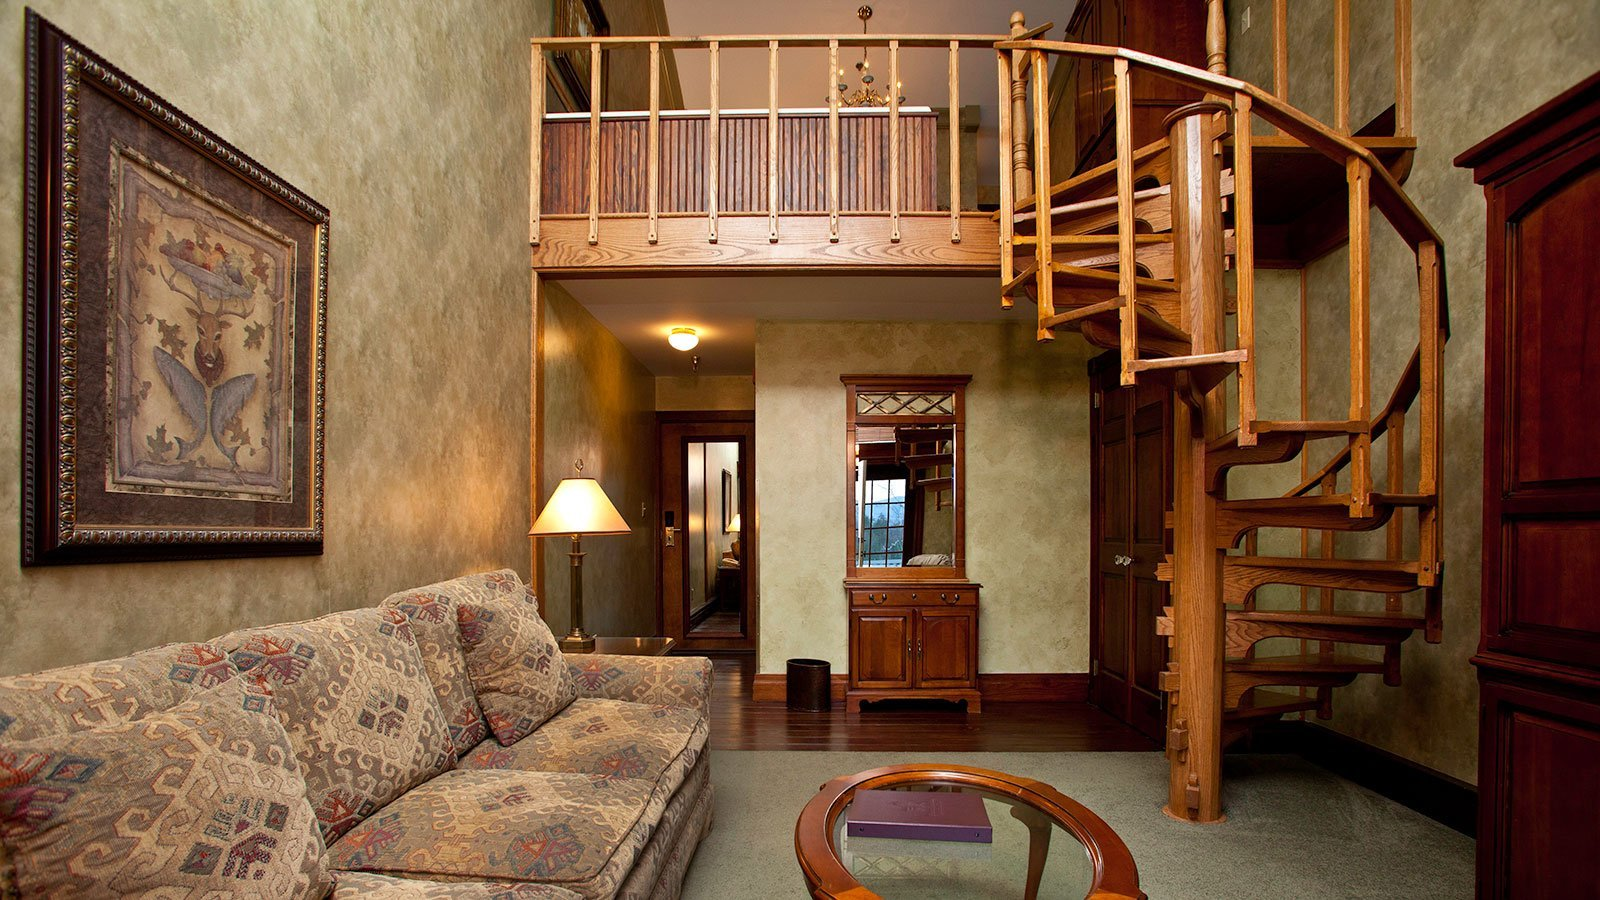 Living room with spiral staircase